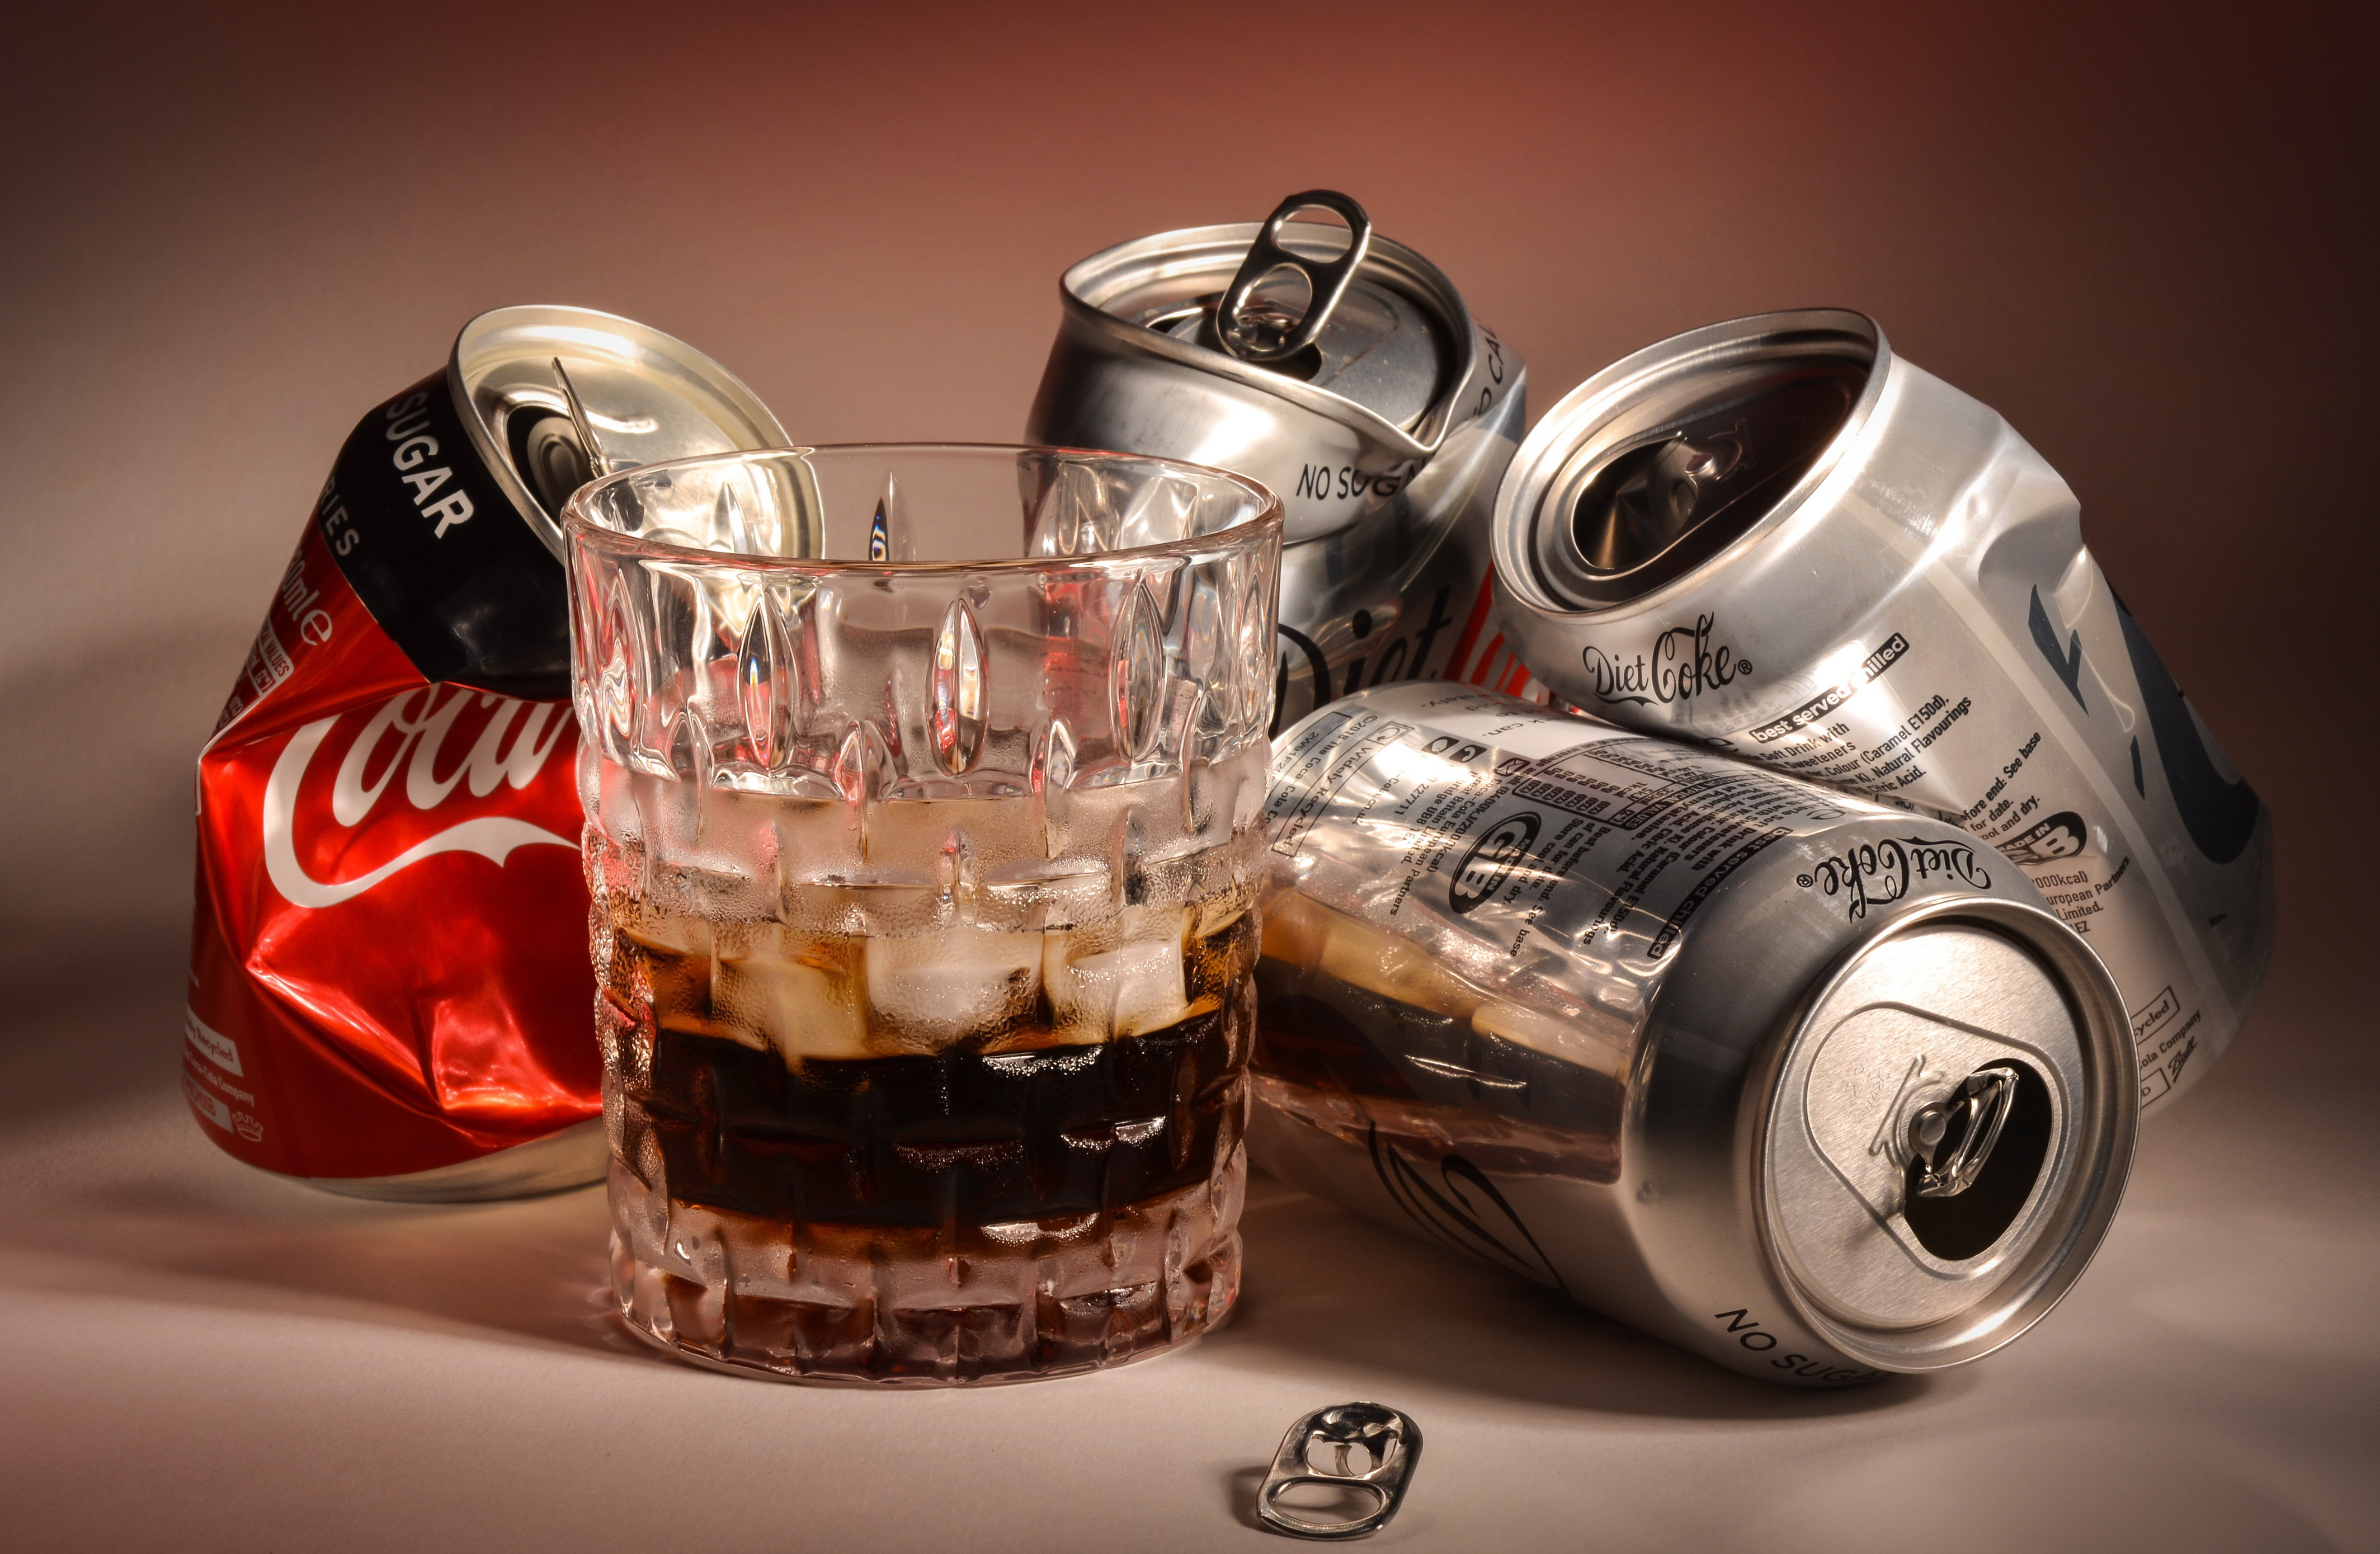 Images Coca-Cola tin can Highball glass Food Drinks drink